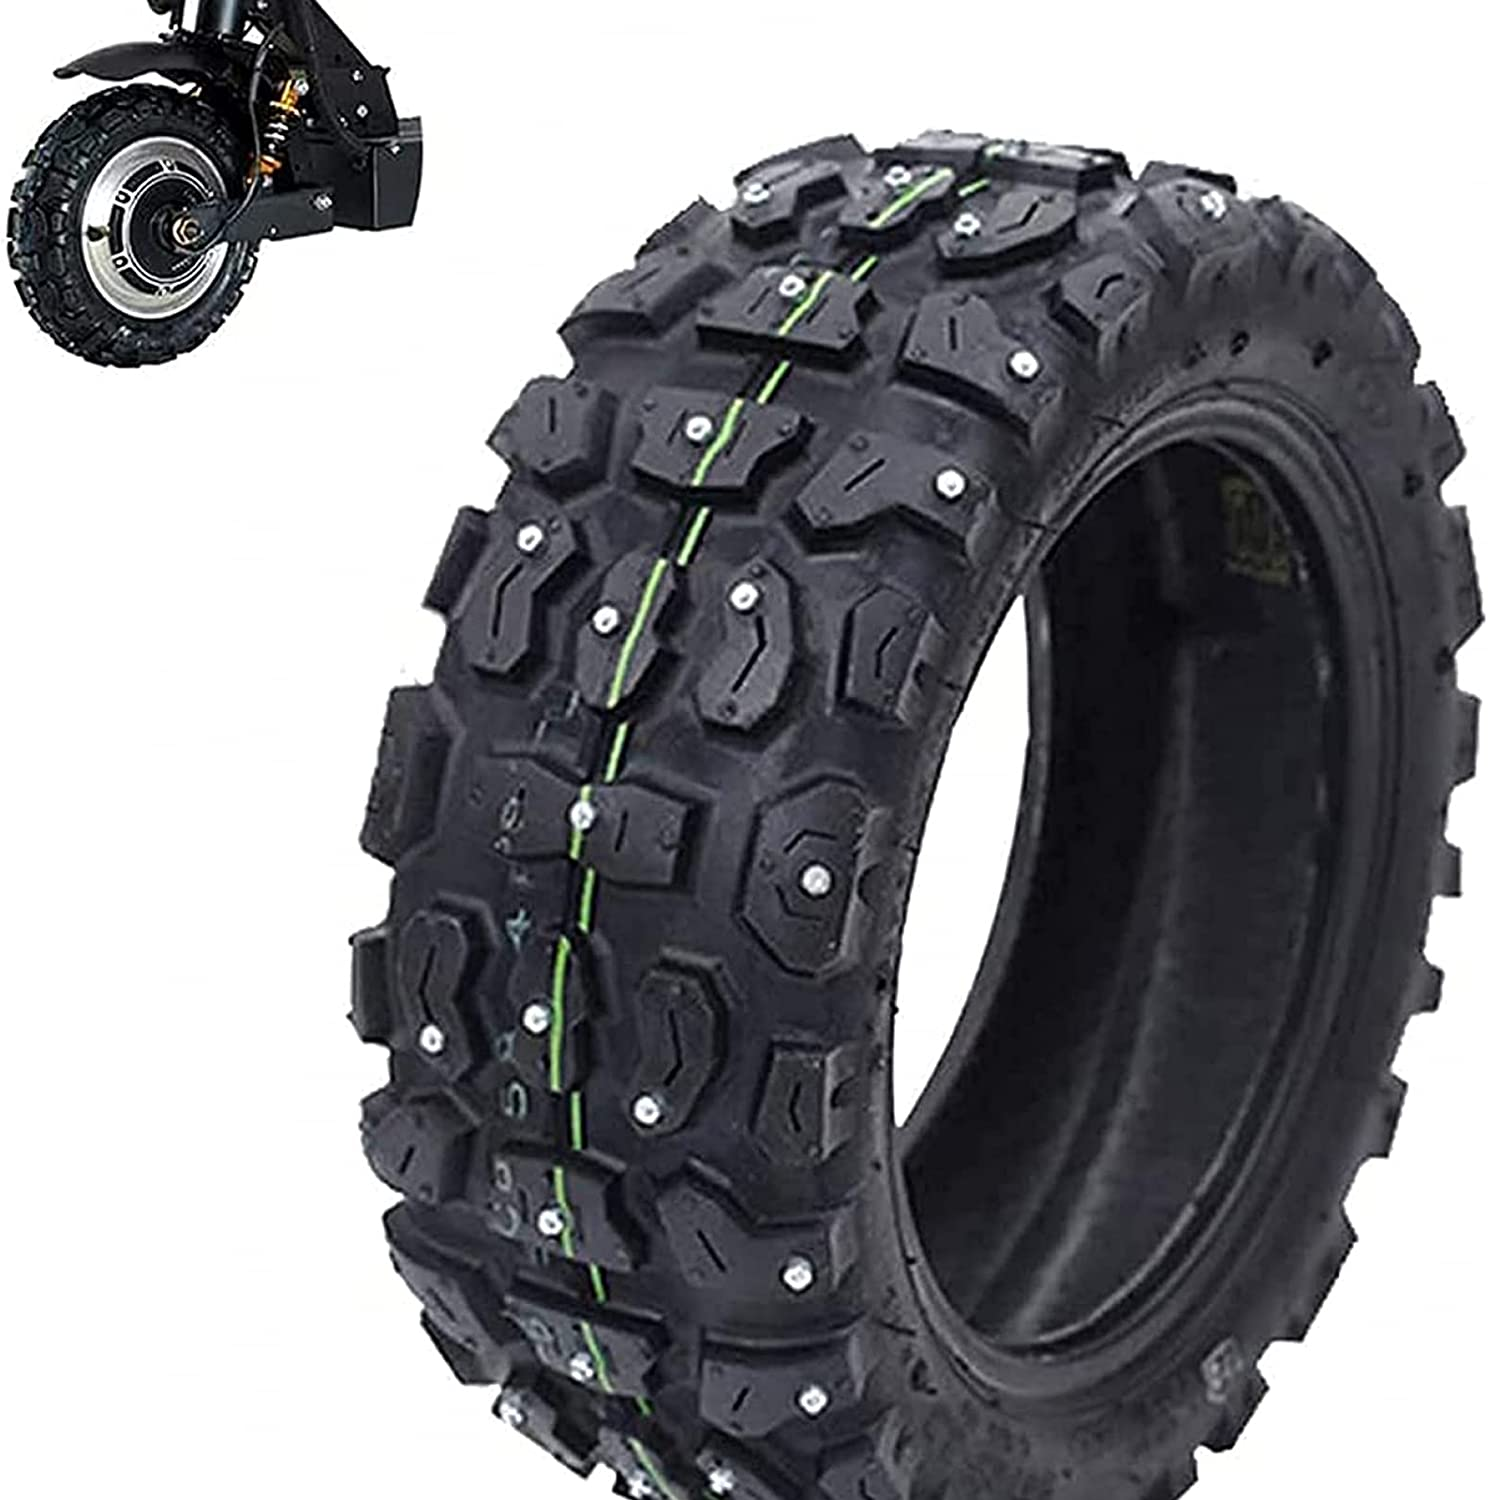 Electric Scooter Tires Offroad Scoote 65-6.5 90 Wheels Now on sale Ranking TOP18